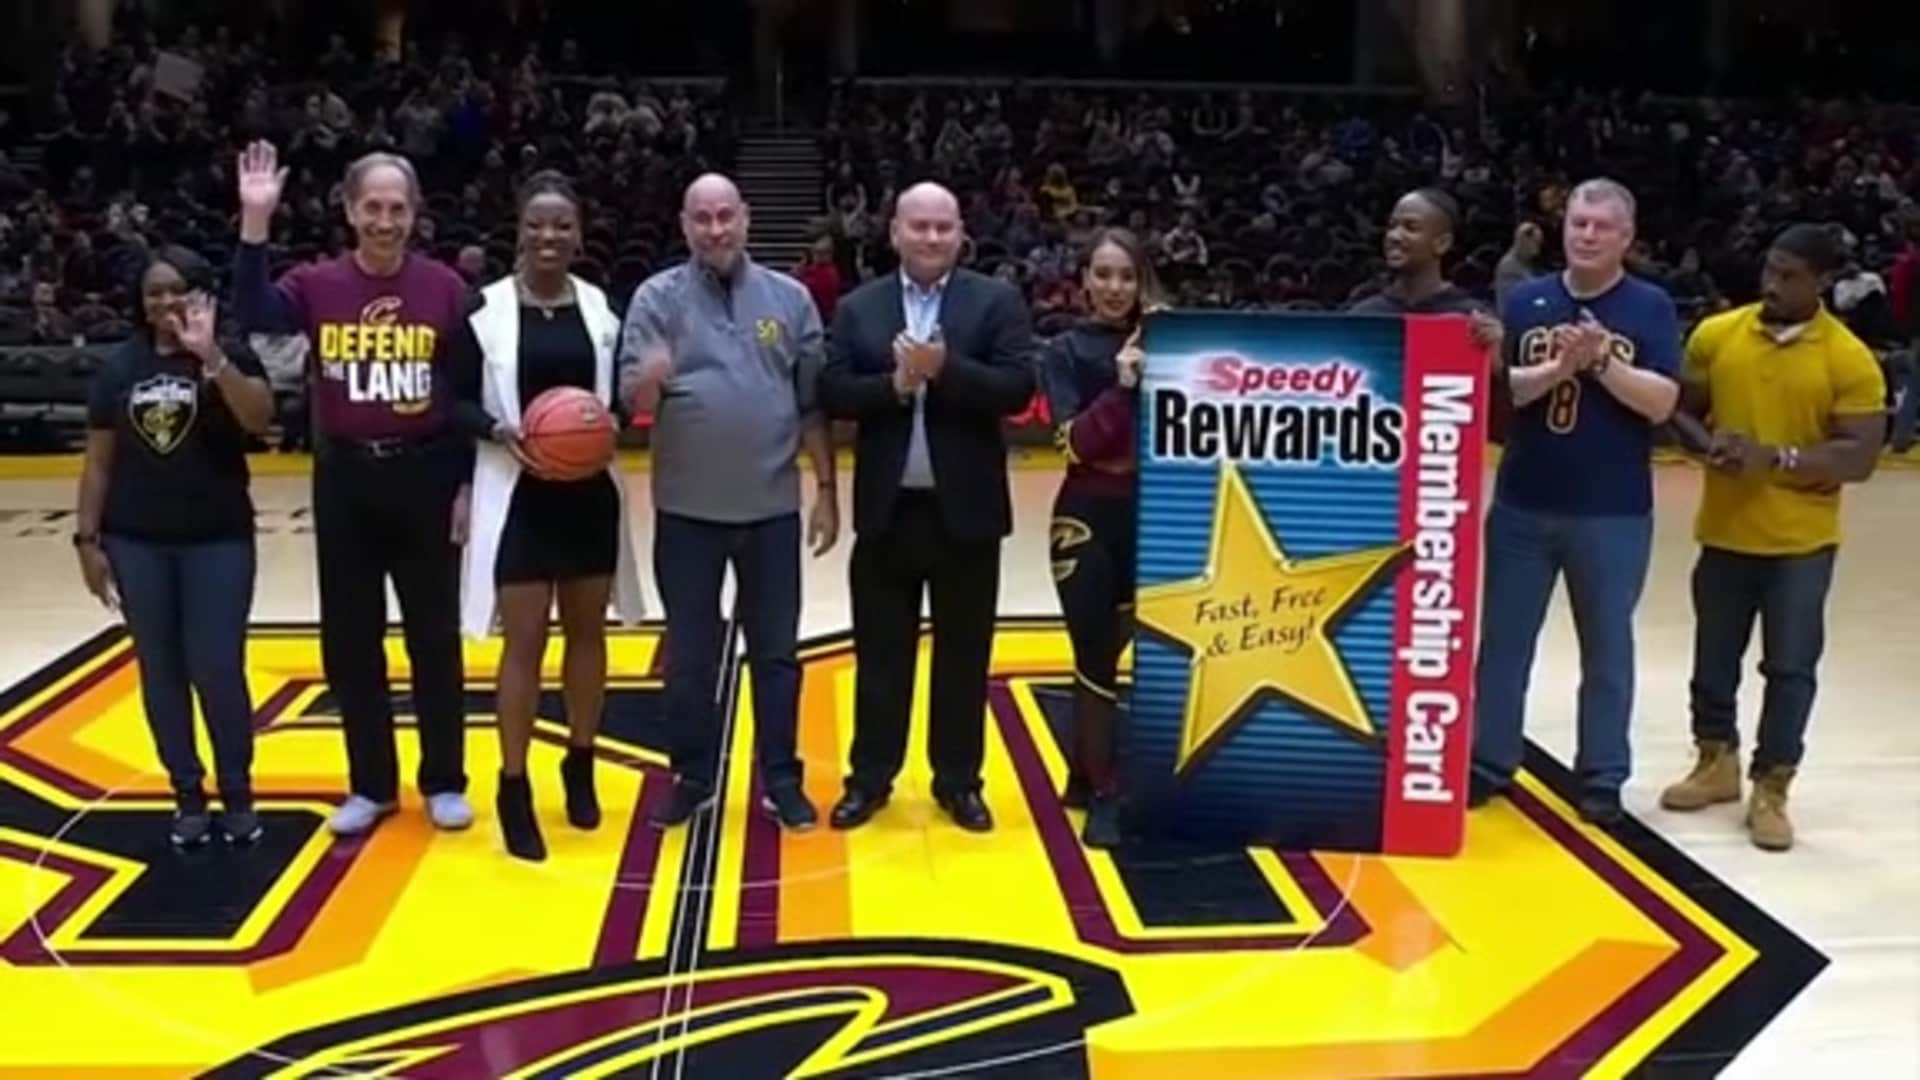 EveryFAN Winner Honored at Halftime